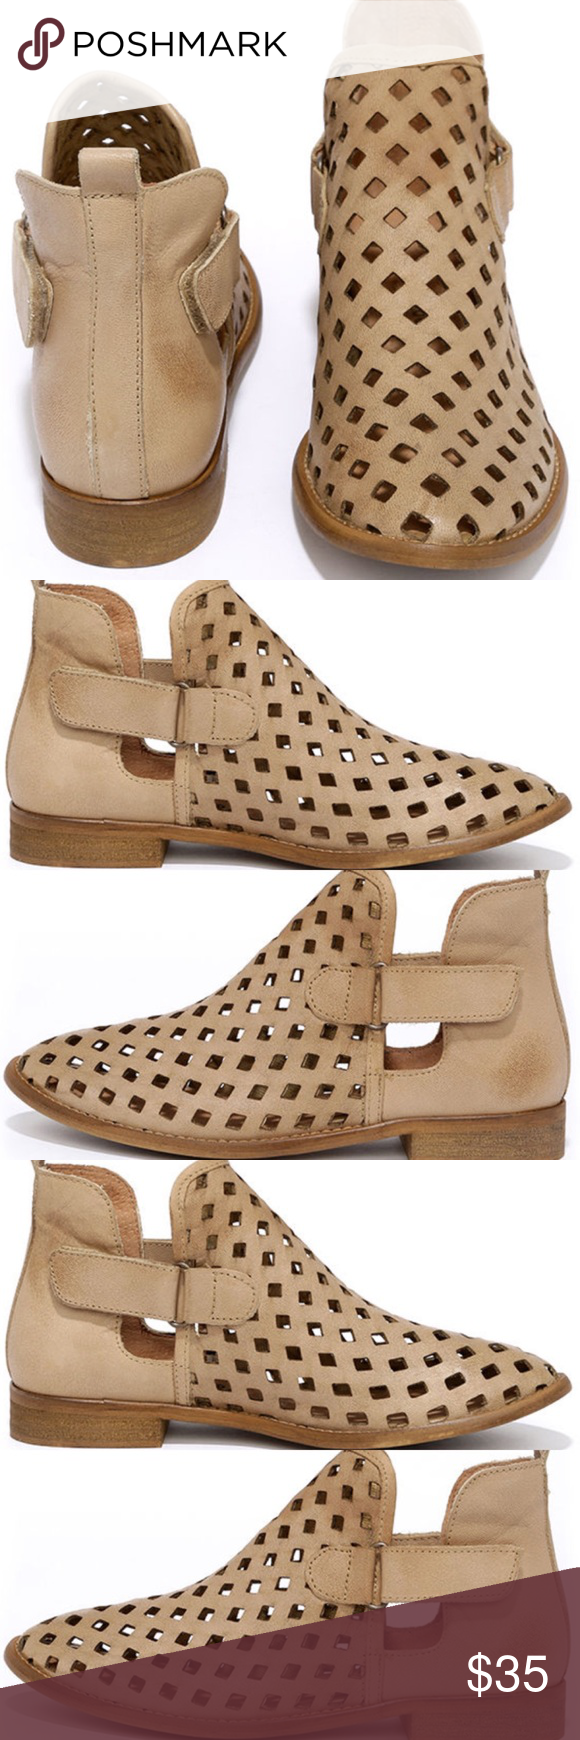 "Musse & Cloud Taupe Leather ankle boots These ankle booties have a leather cutout upper and almond toe. There is a cool cutout shaft with VELCRO fasteners on each side 1"" block heel cushioned insole Musse & Cloud  Shoes Ankle Boots & Booties"